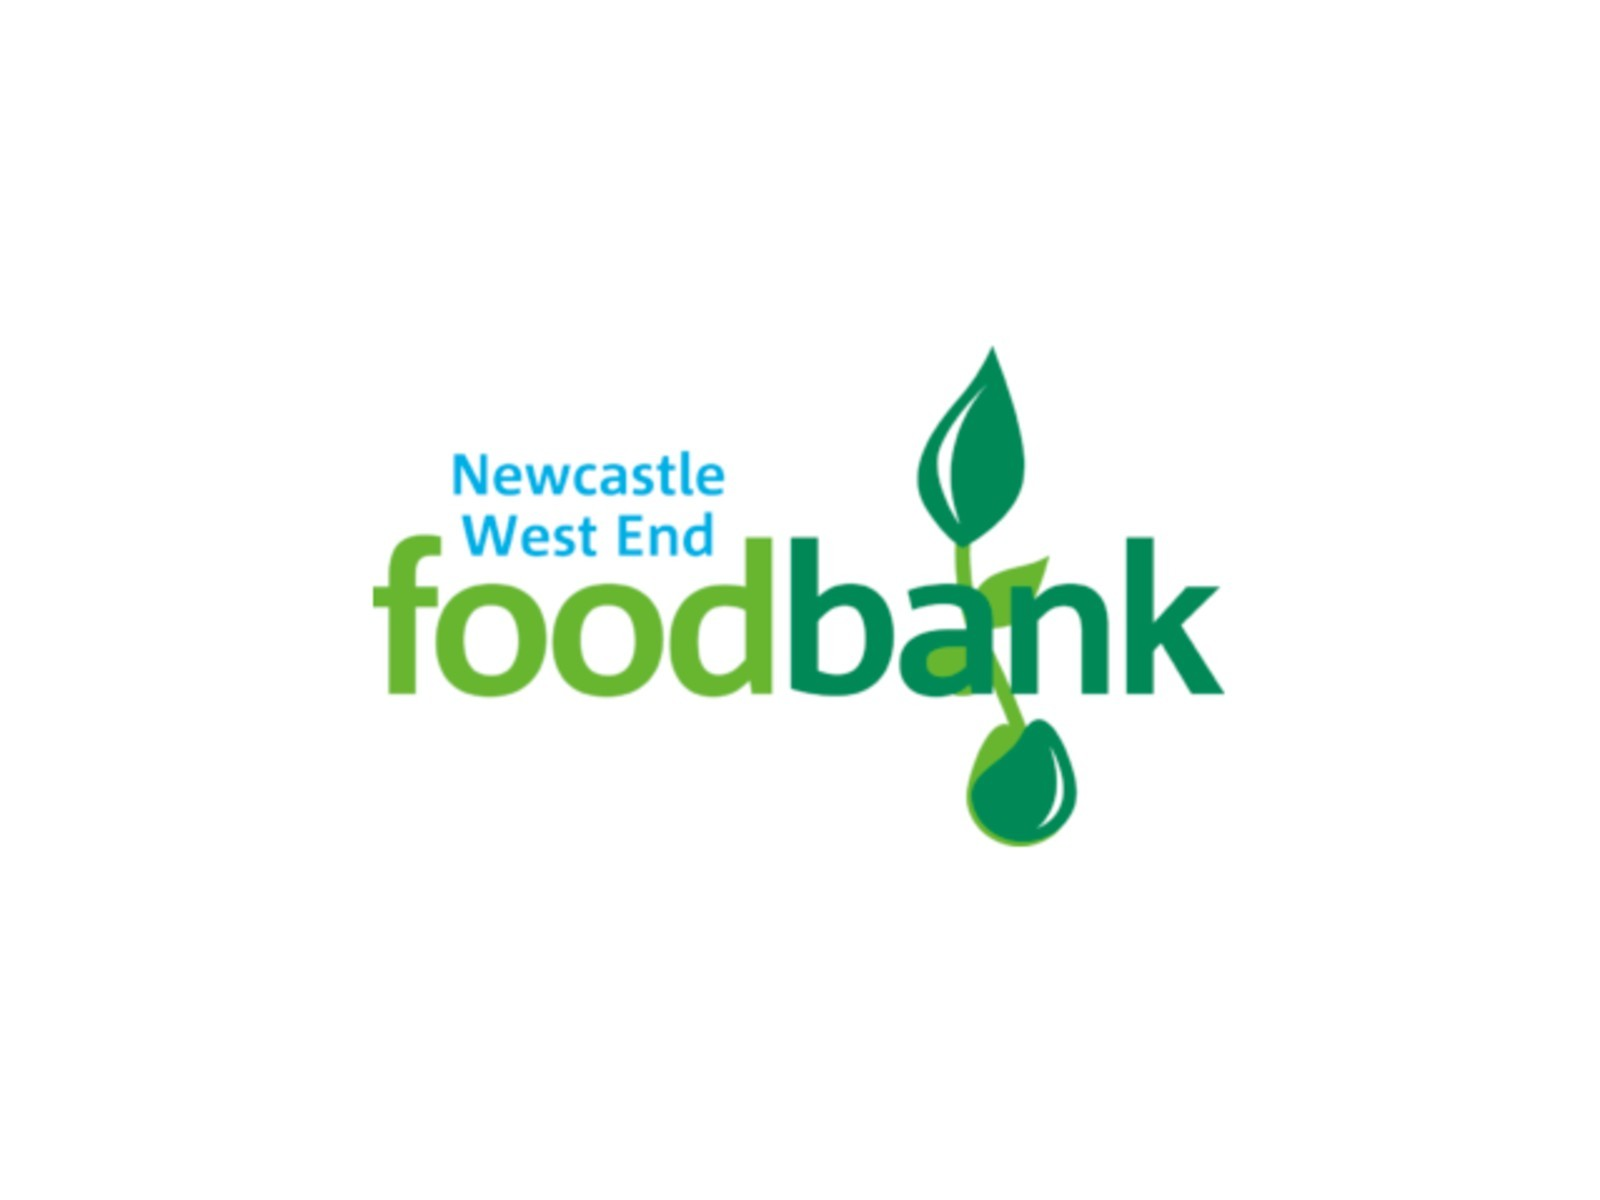 True Potential Fundraise £2558 for Newcastle West End Foodbank